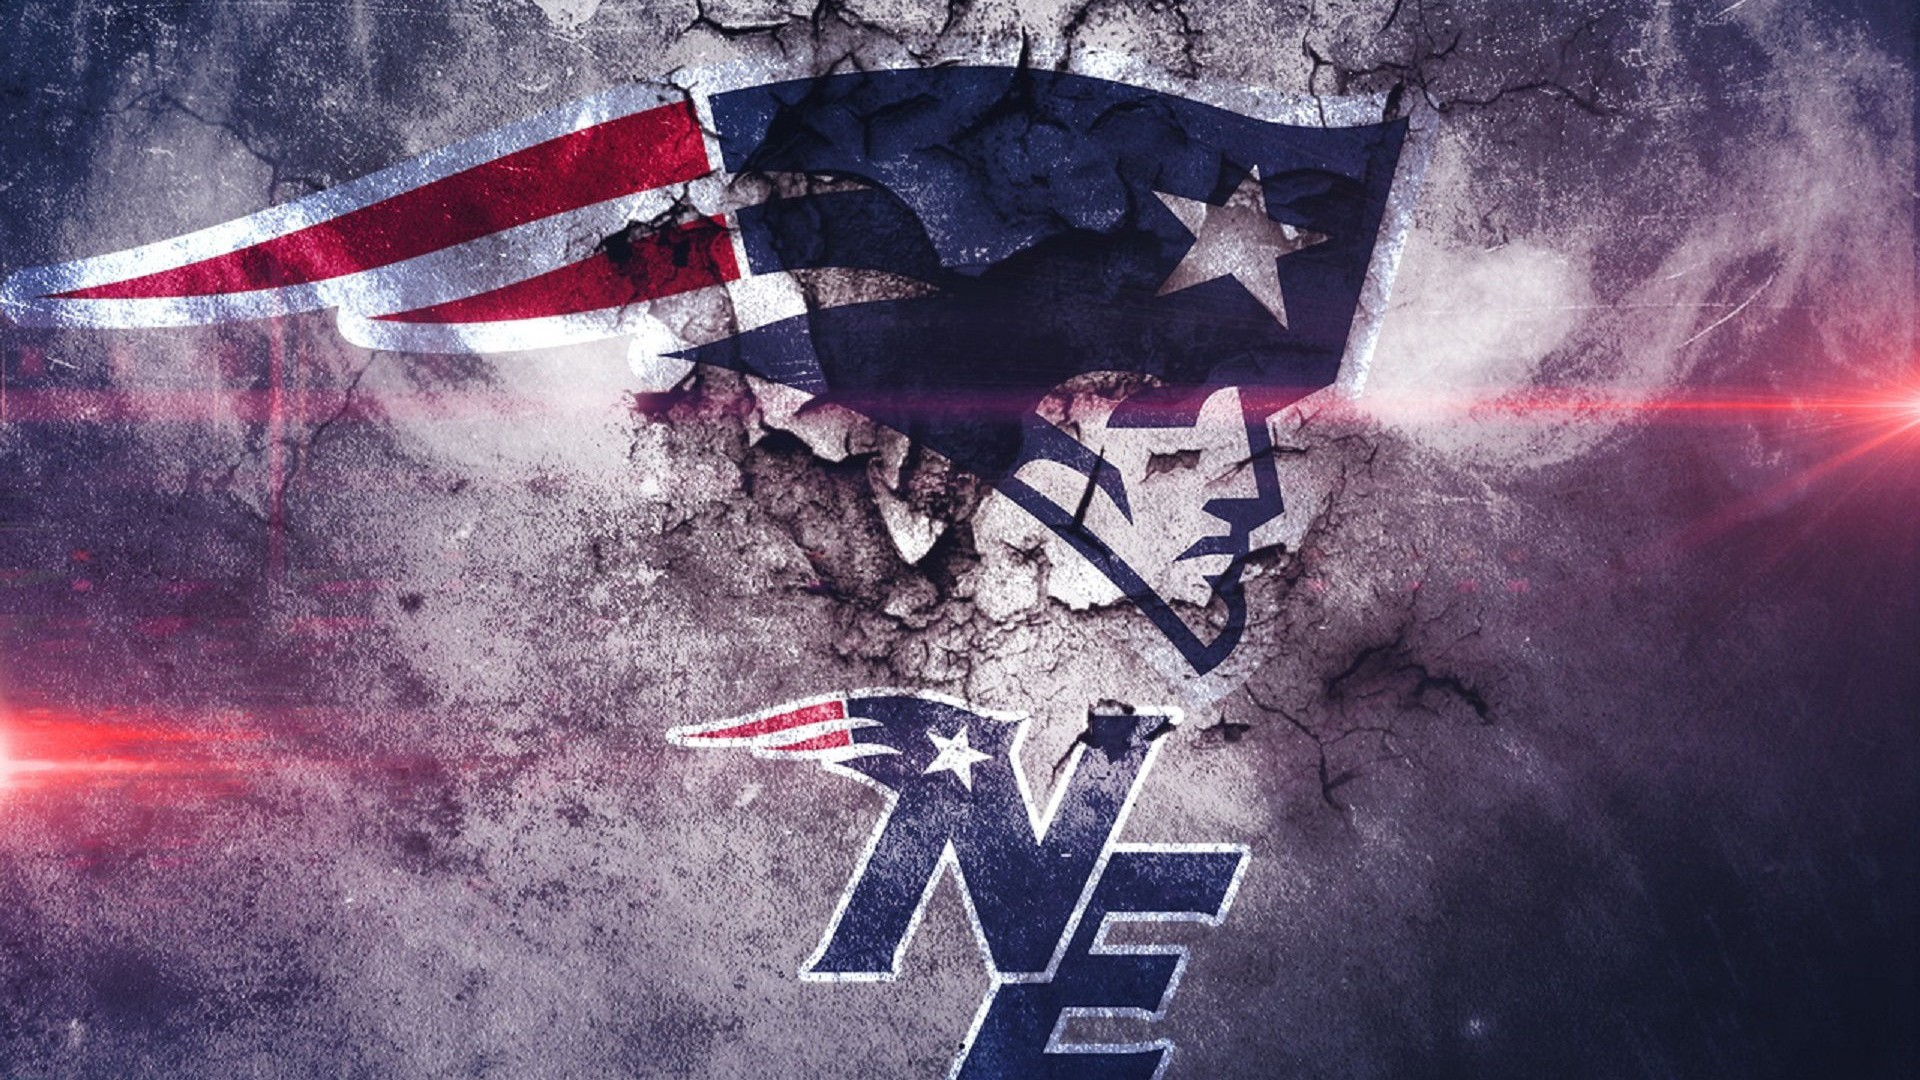 Wallpapers Hd New England Patriots With Resolution - New England Patriots Cool - HD Wallpaper